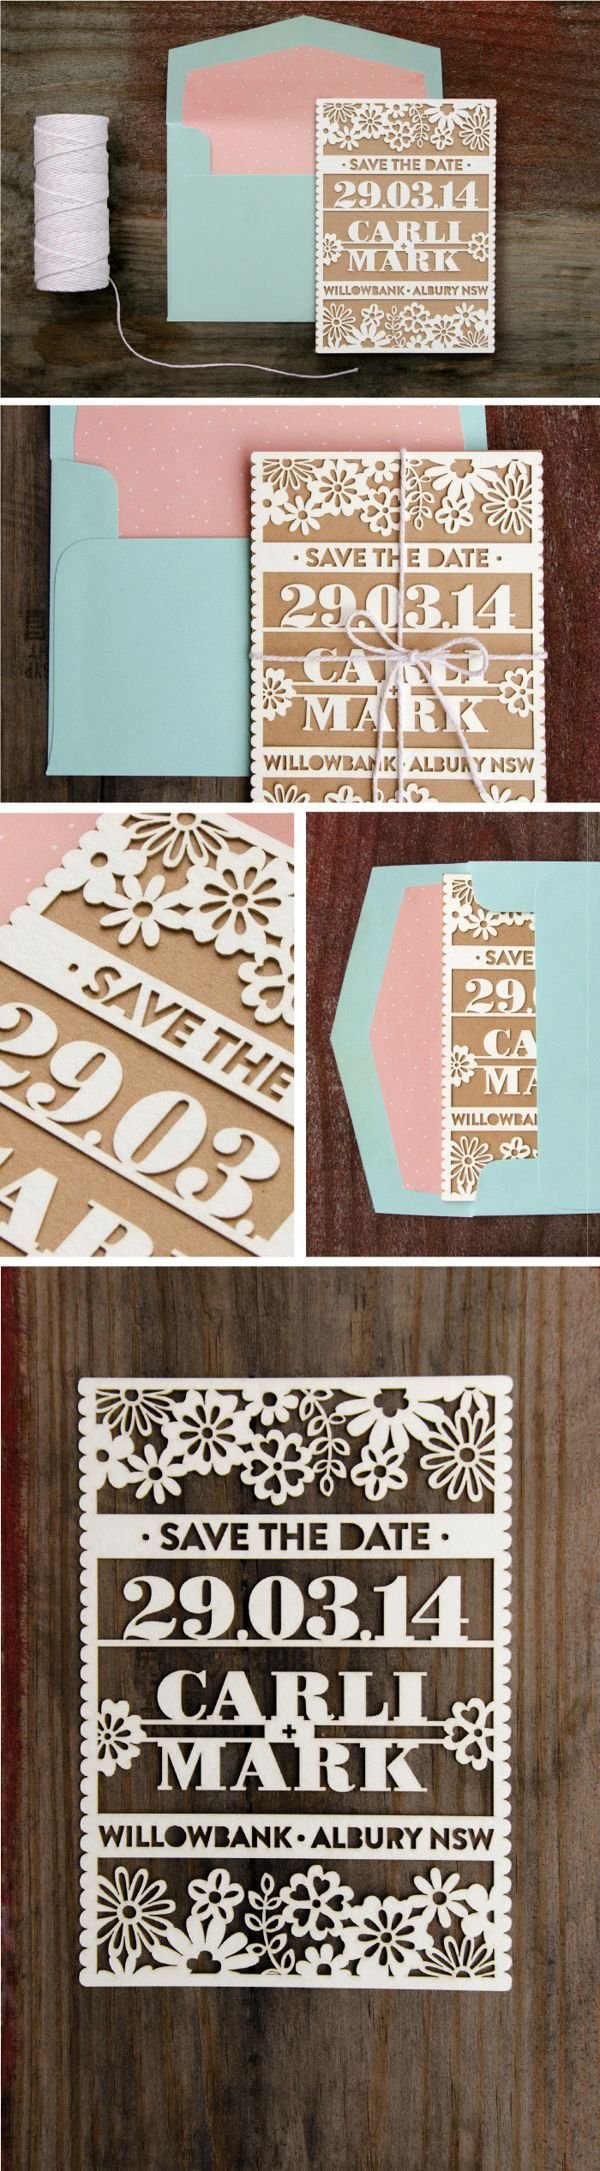 Wondering how you make your save the dates special? Check out these ideas for save the dates your guests will love.